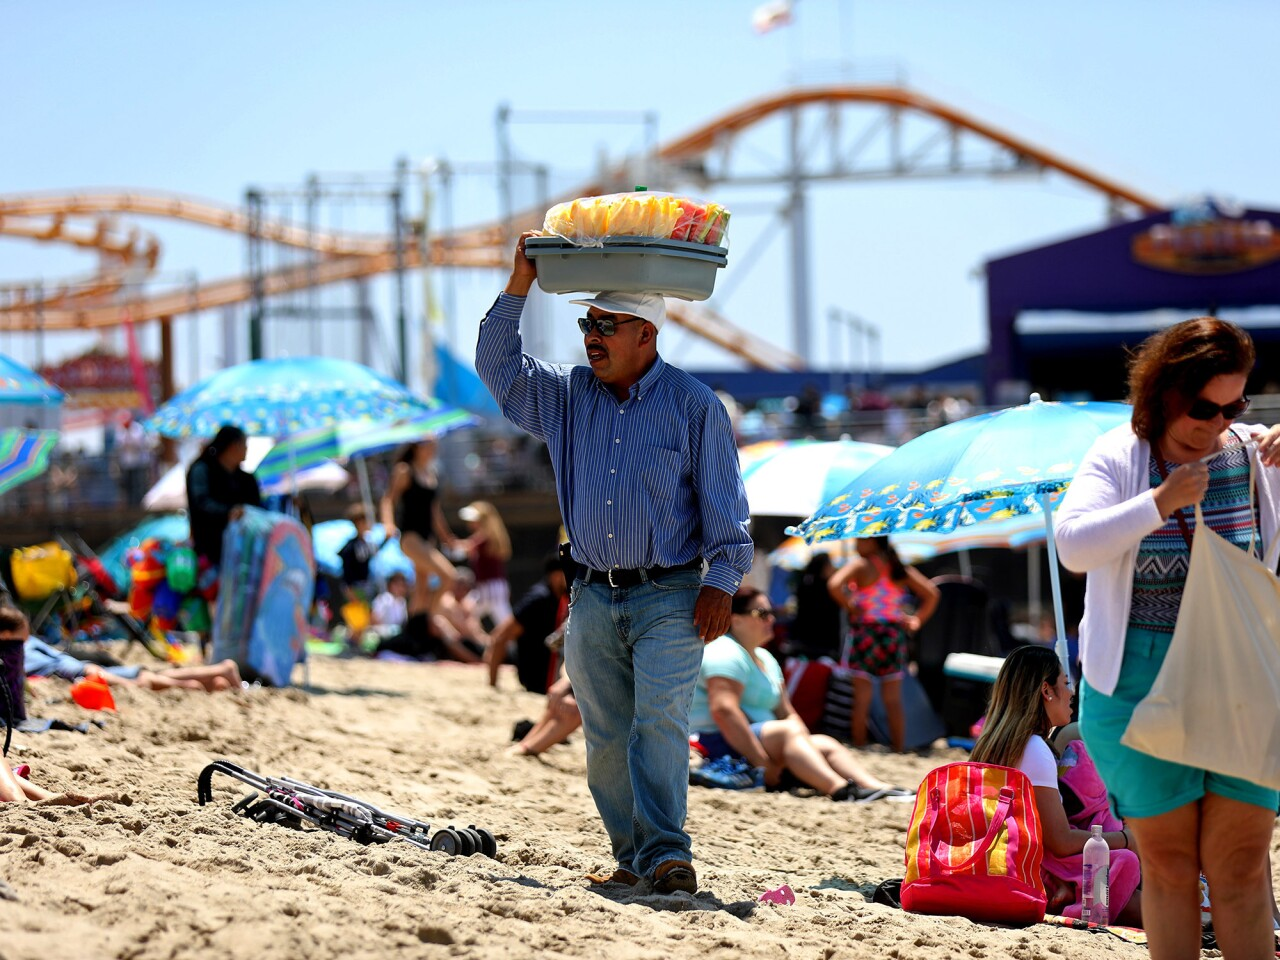 A vendor sells fruit to beachgoers in Santa Monica. Some licensed vendors working around the pier say a new ordinance that can penalize them for blocking access ways has made them nervous about being arrested.